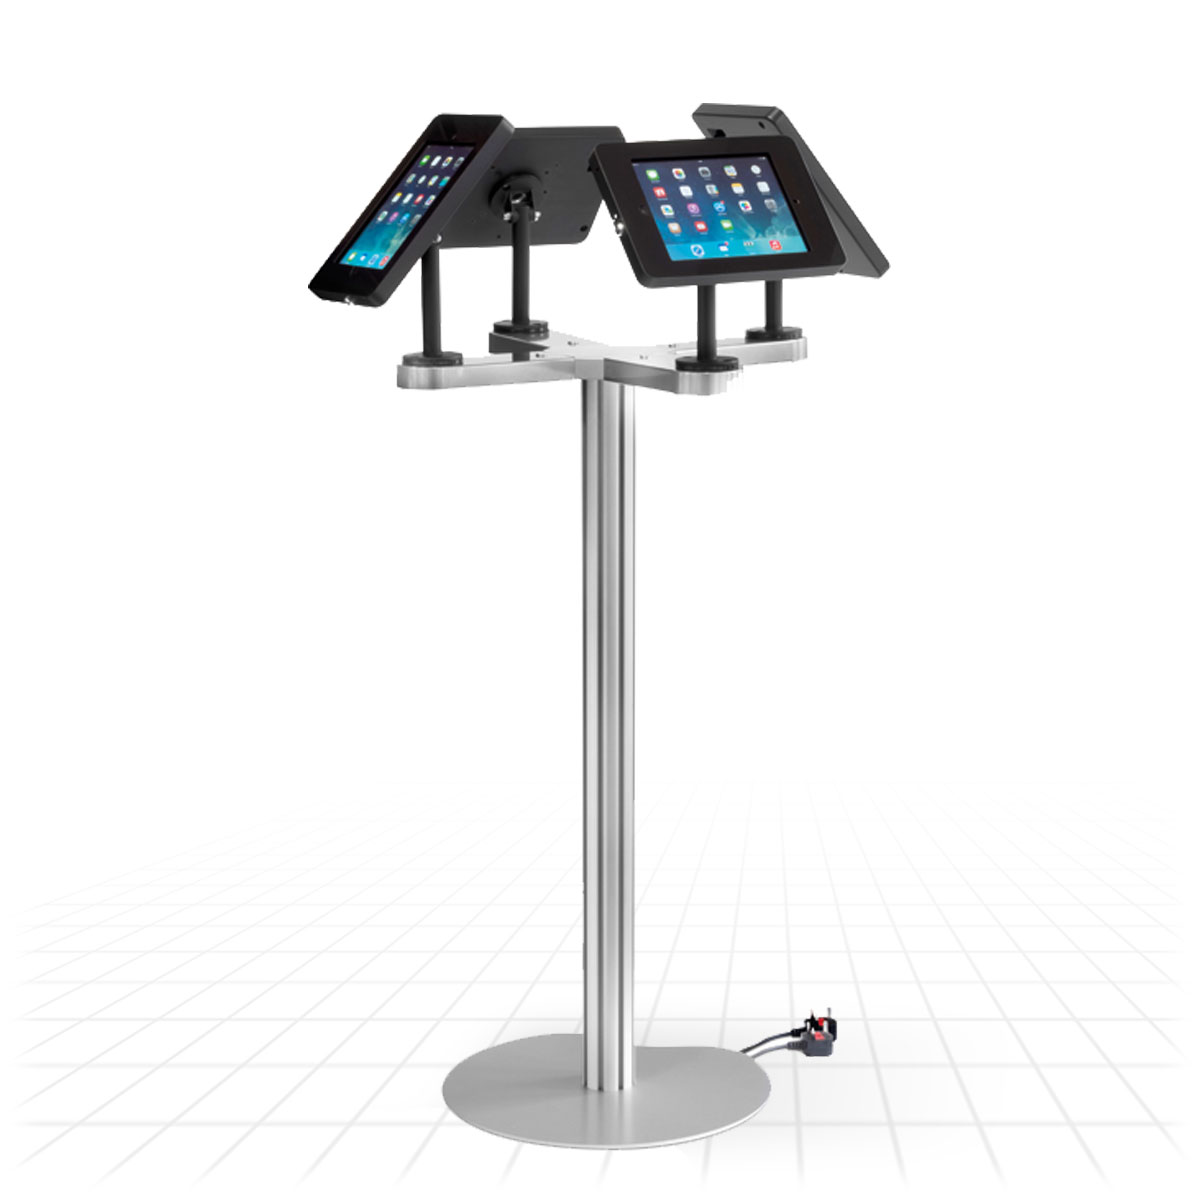 IPad Quad Display Stand Tablet Stands